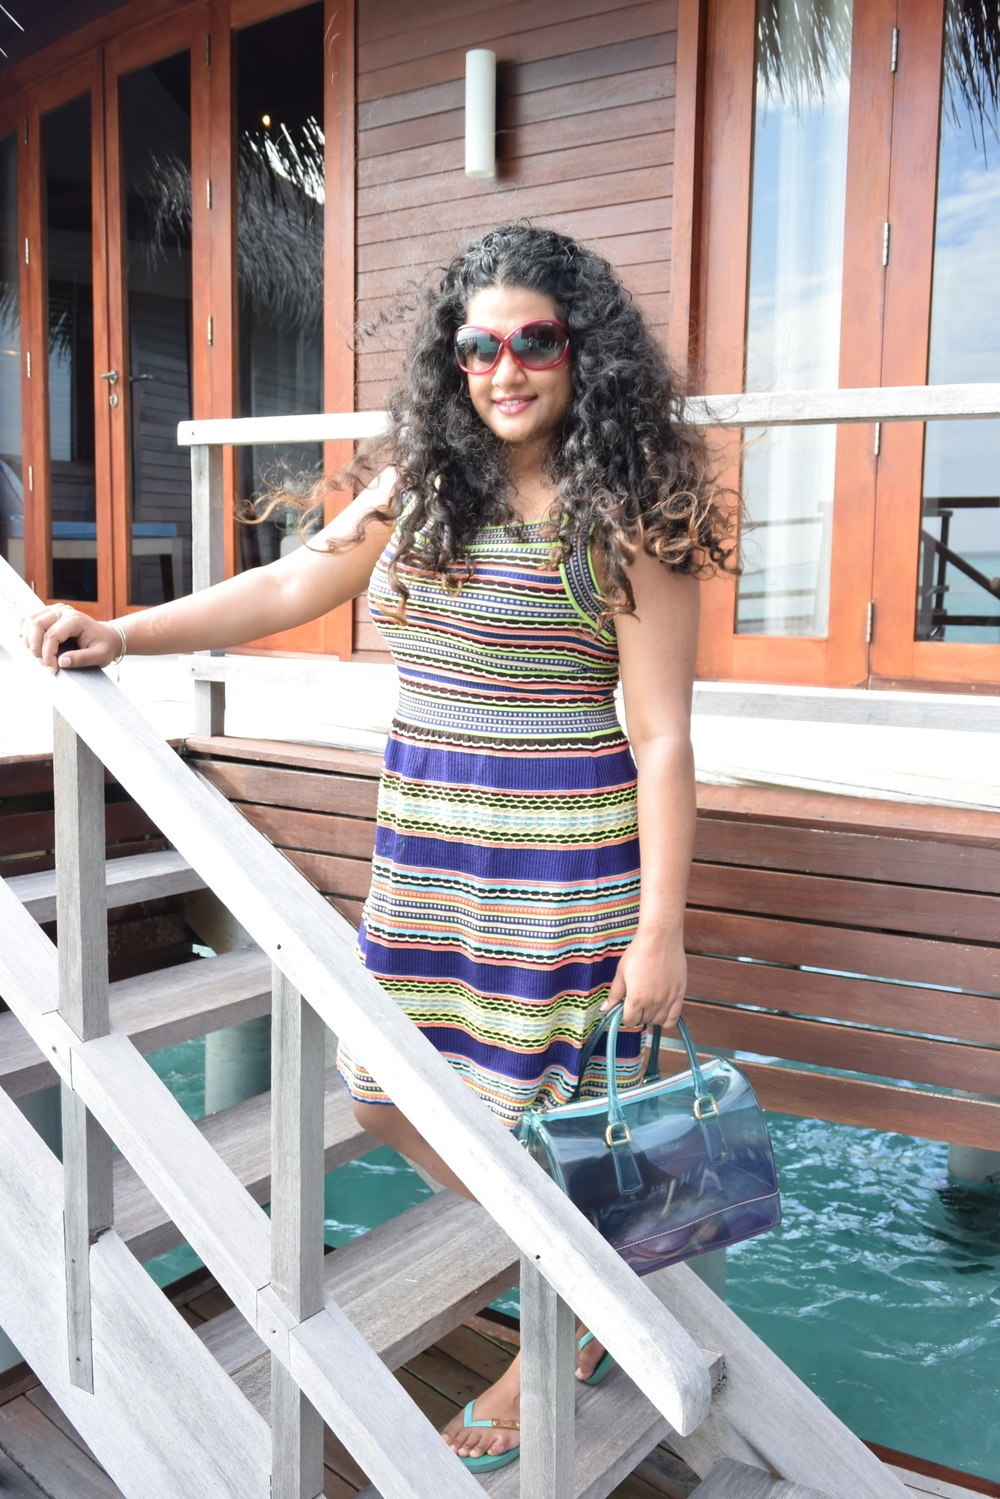 Dress M Missoni, Flip-Flop Tory Burch, Bag Furla, Sunglasses Tom Ford, Hand-harness Isharya